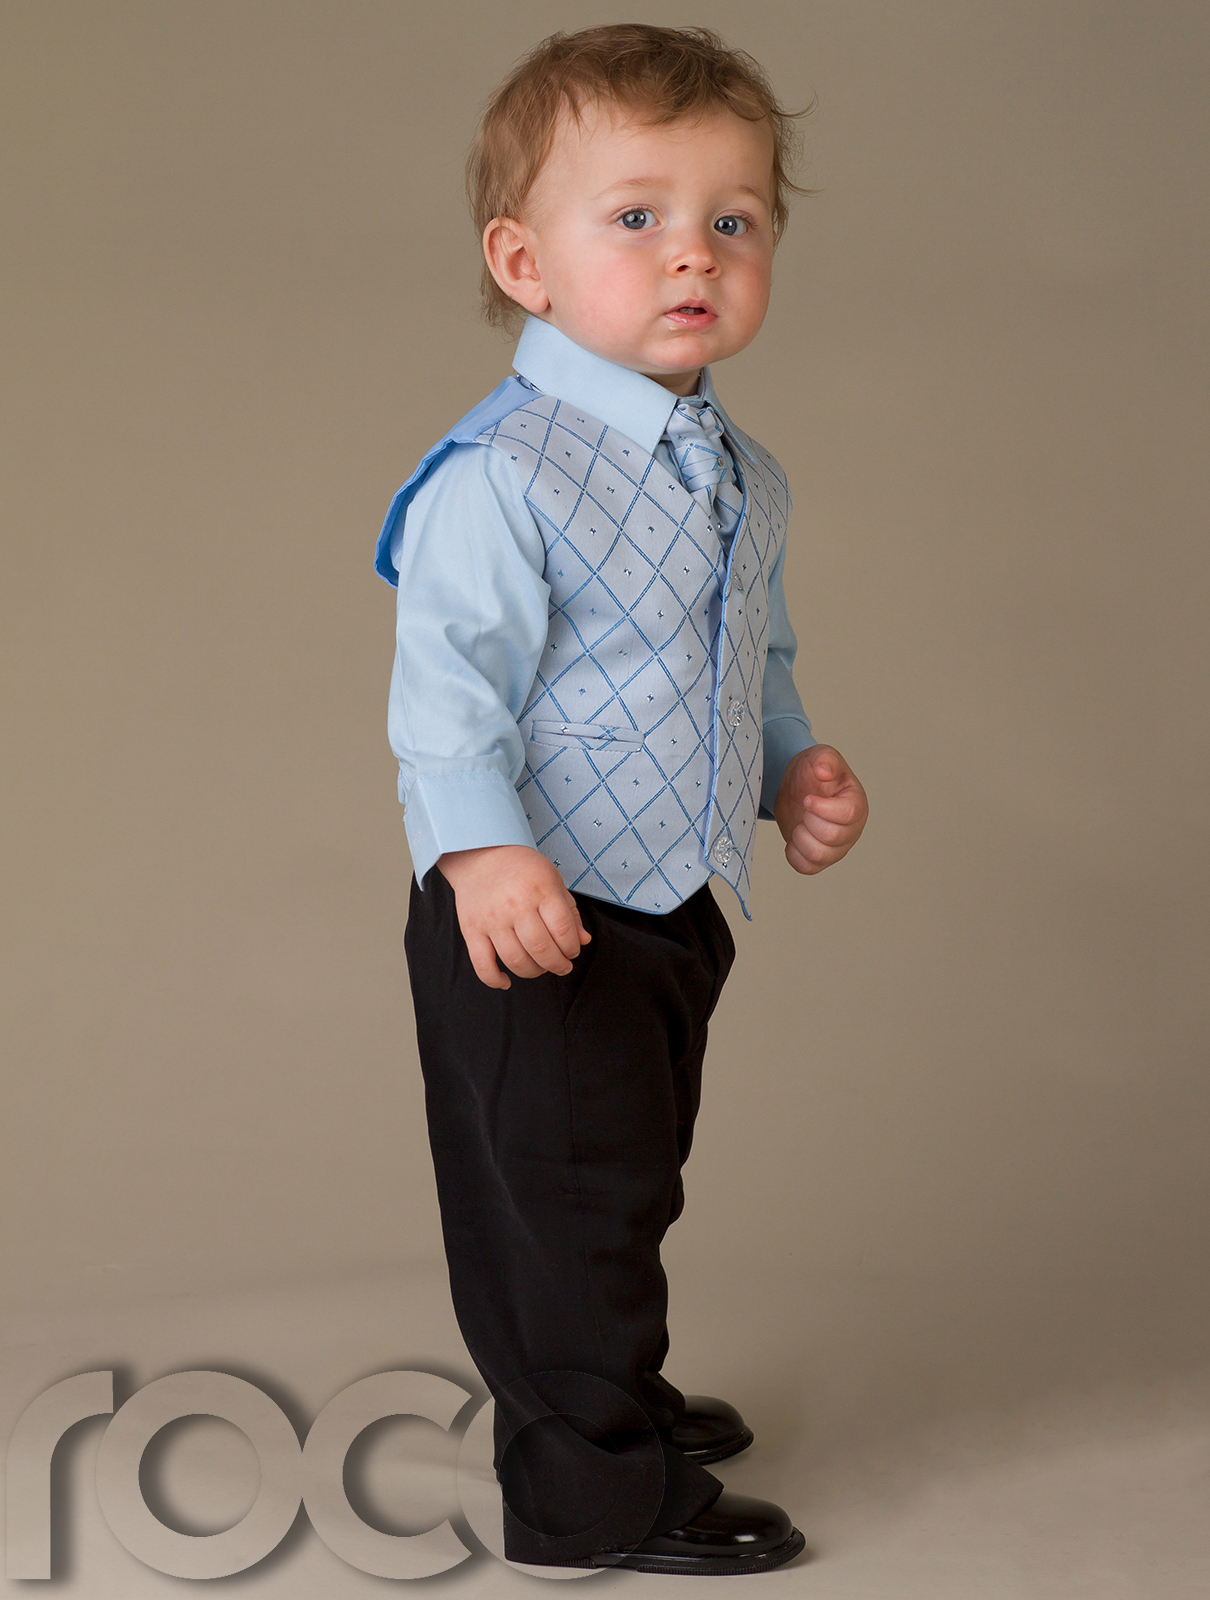 Find baby boy suit at Macy's Macy's Presents: The Edit - A curated mix of fashion and inspiration Check It Out Free Shipping with $75 purchase + Free Store Pickup.